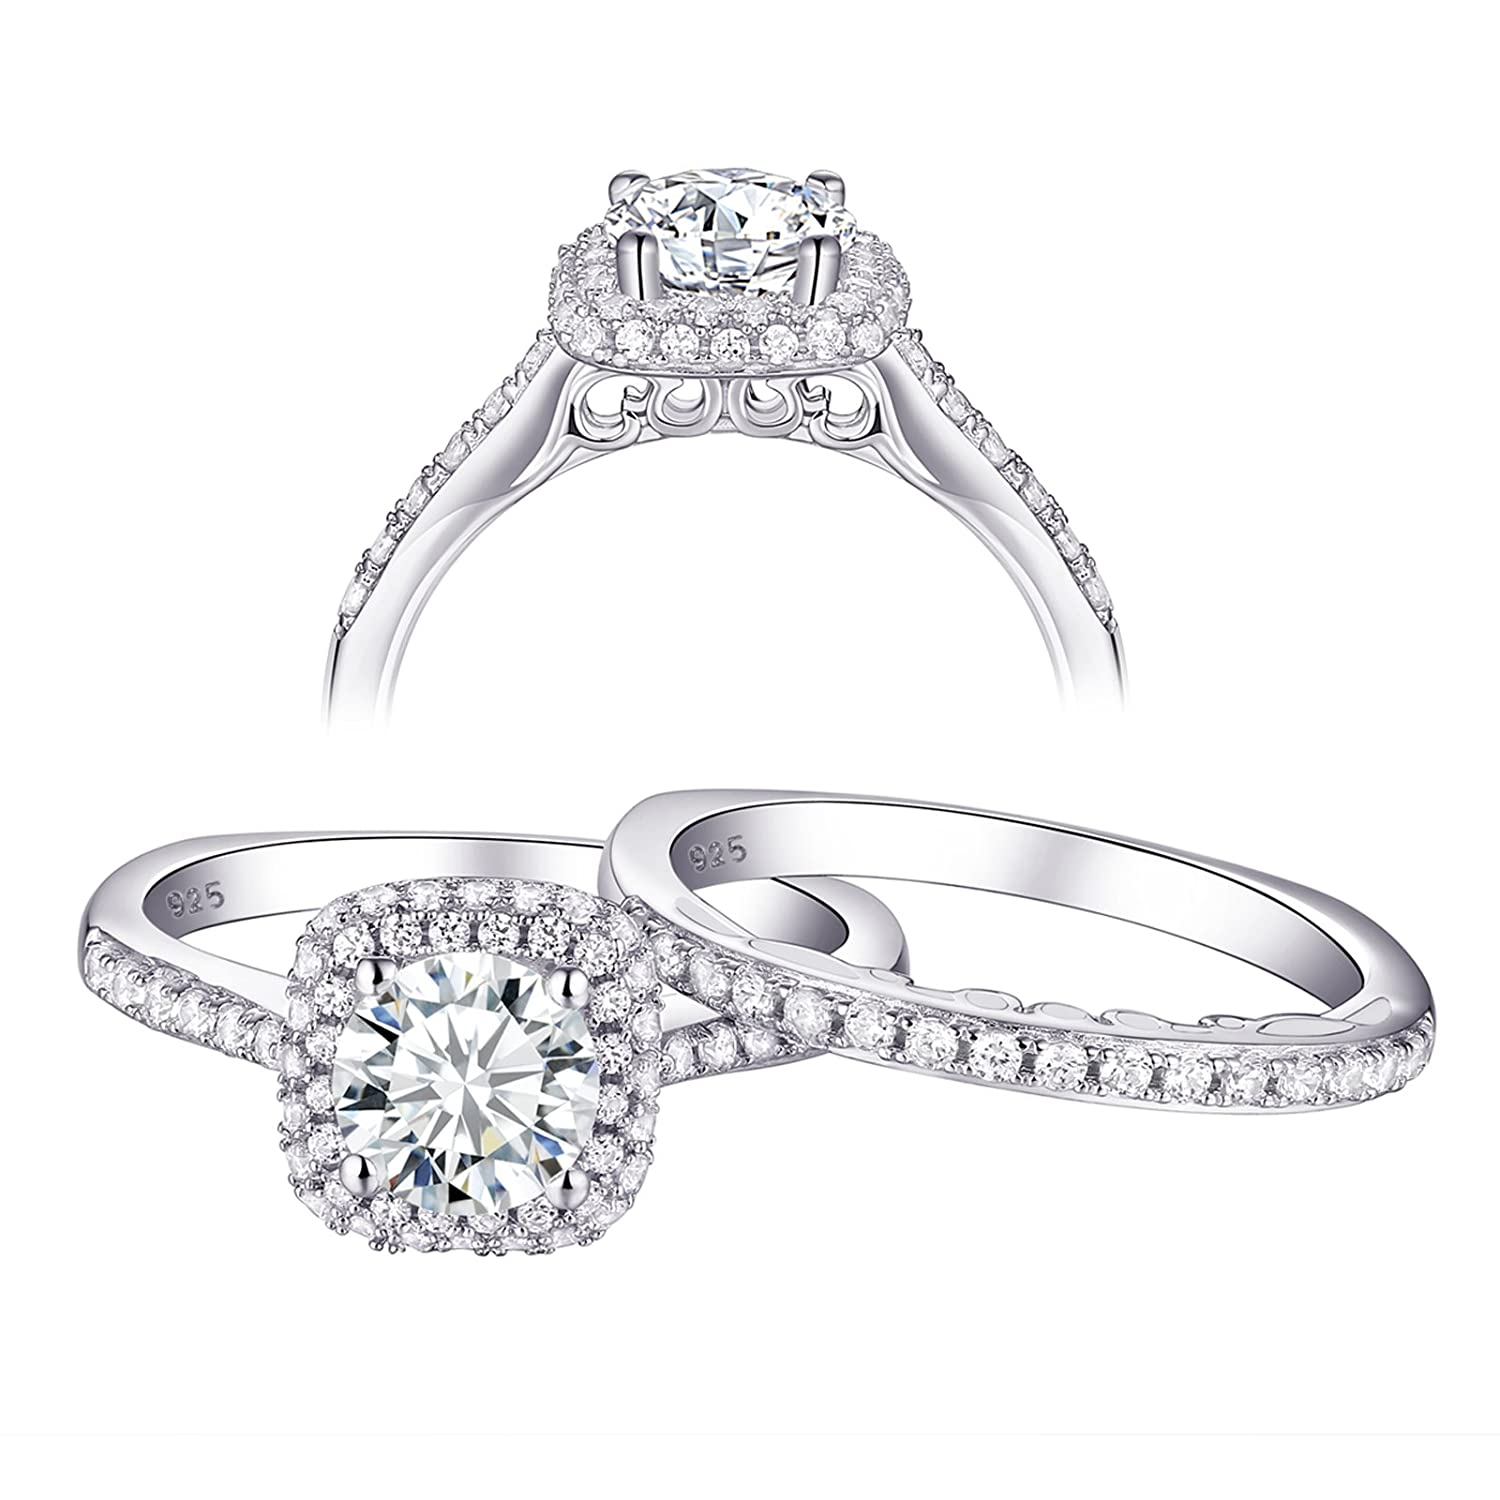 Newshe Wedding Engagement Ring Set for Women AAA Cz 1.6ct Round 925 Sterling Silver Size 5-10 Newshe Jewellery JR4922_SS